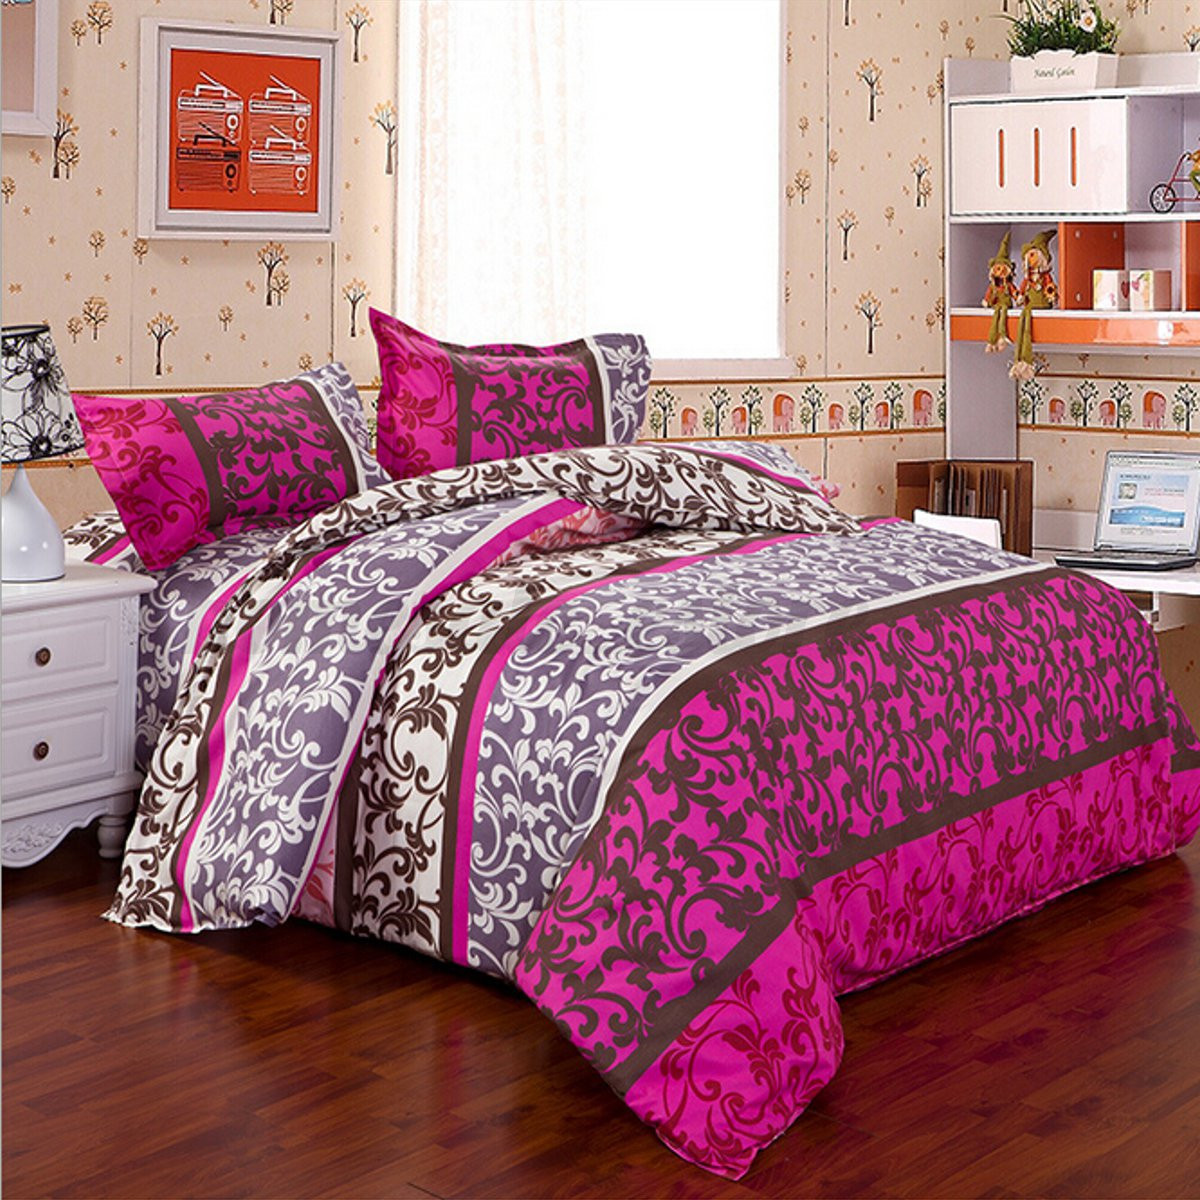 All Size Duvet Cover With Pillow Case Quilt Cover Bedding